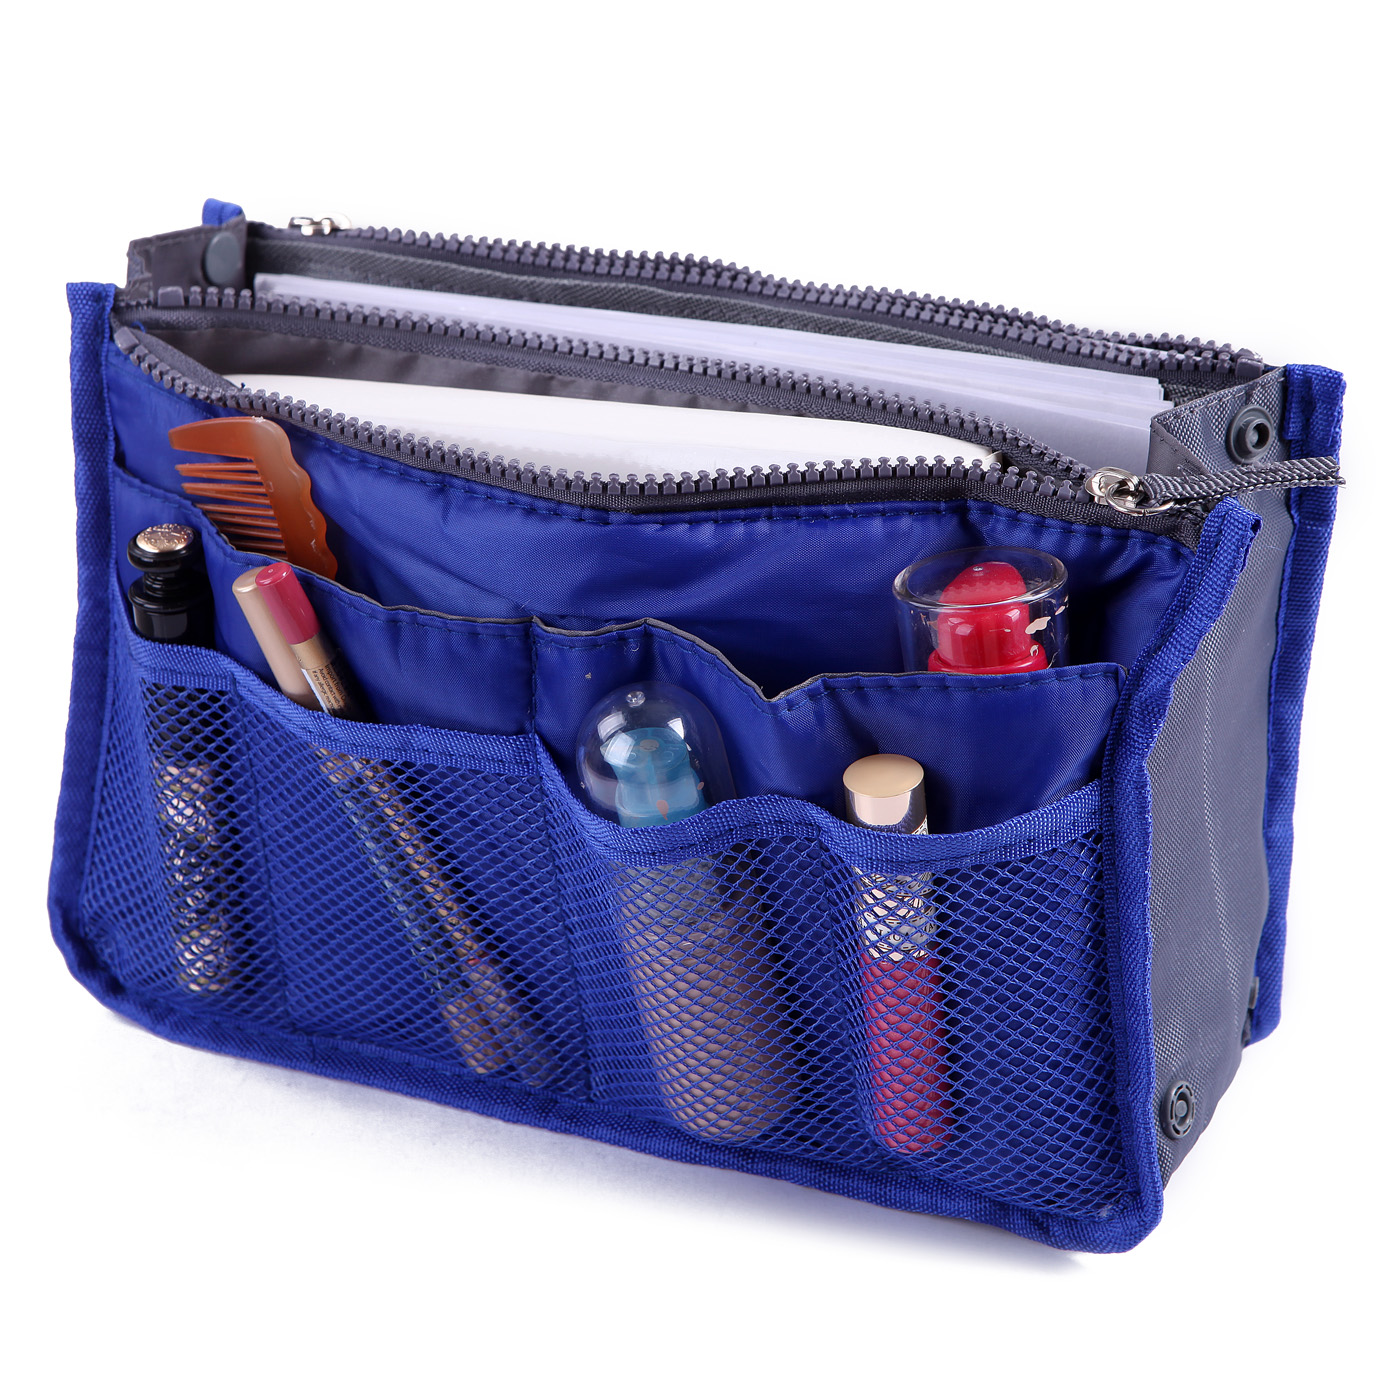 HDE Expandable 13 Pocket Handbag Insert Purse Organizer with Handles (Black)